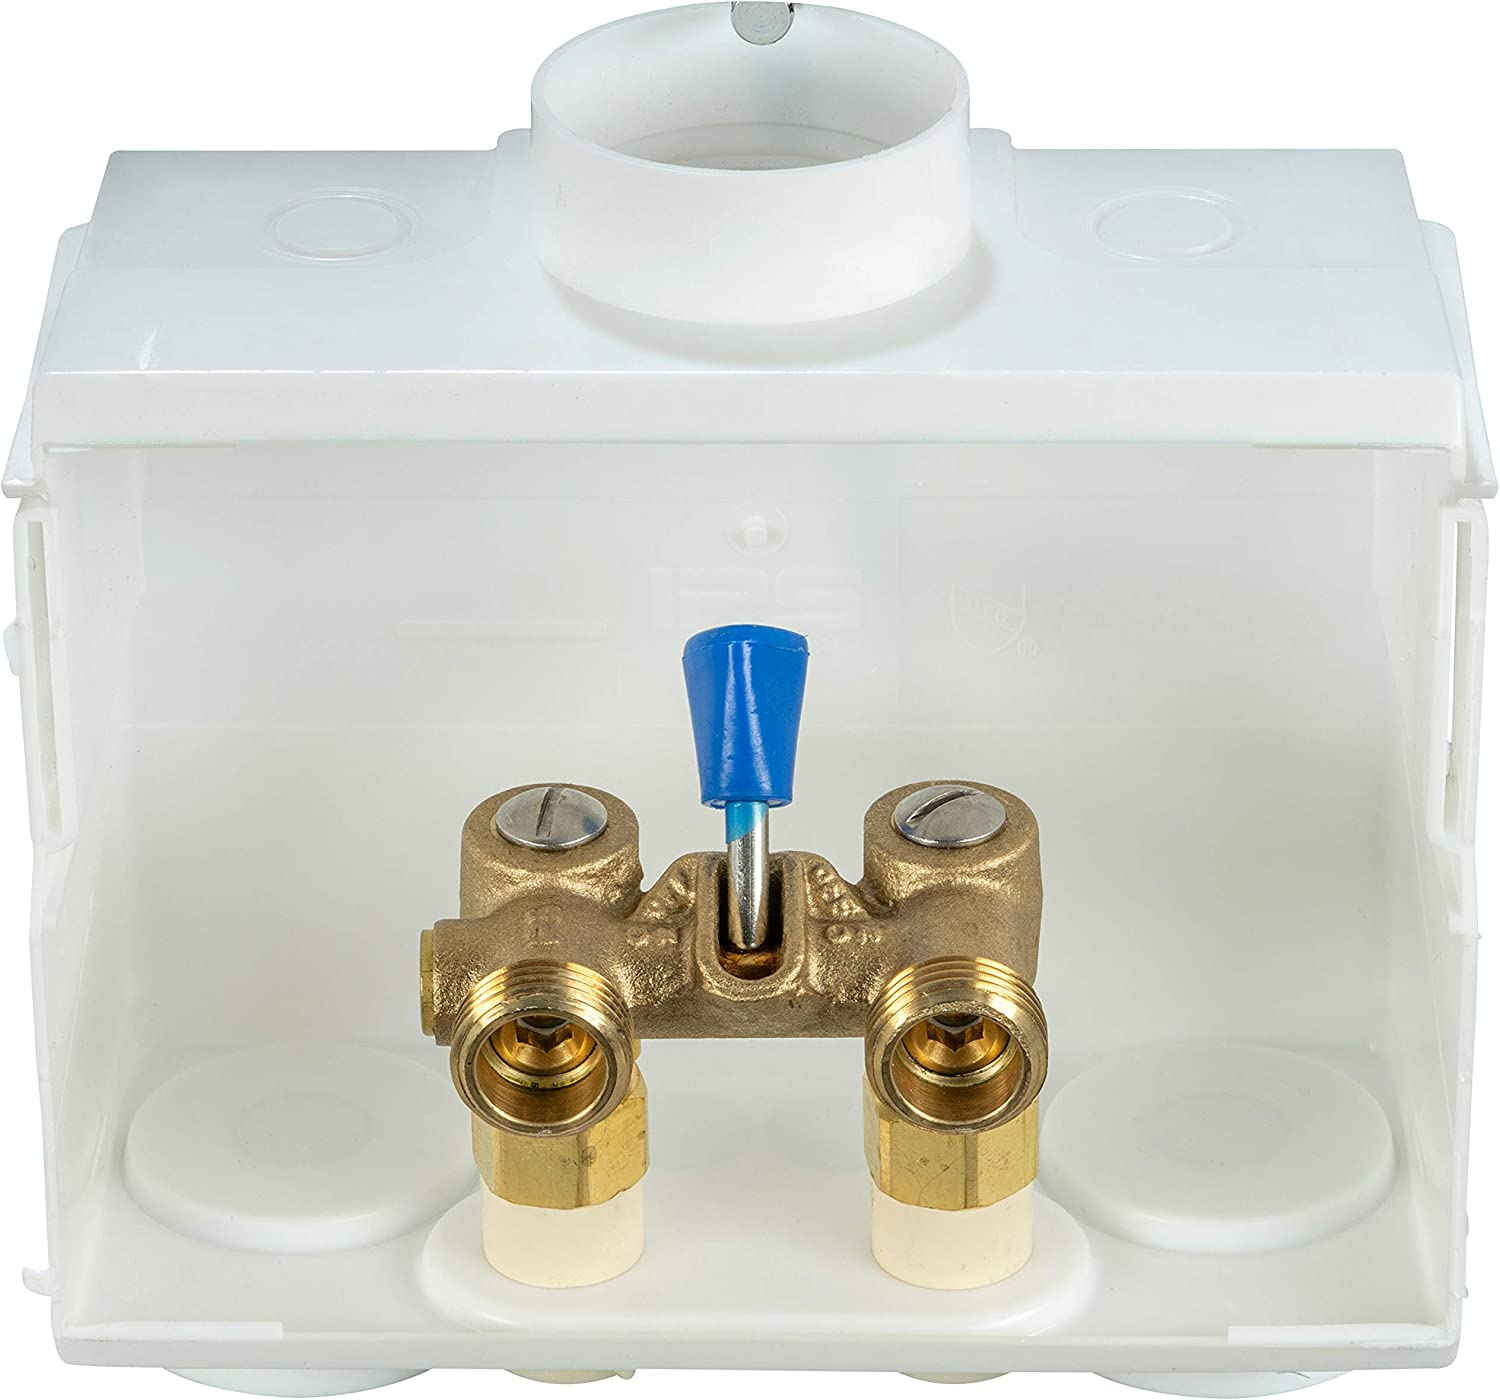 Water-Tite 85637 DU-ALL Dual-Drain Washing Outlet - Free shipping on posting reviews Box Sacramento Mall Machine